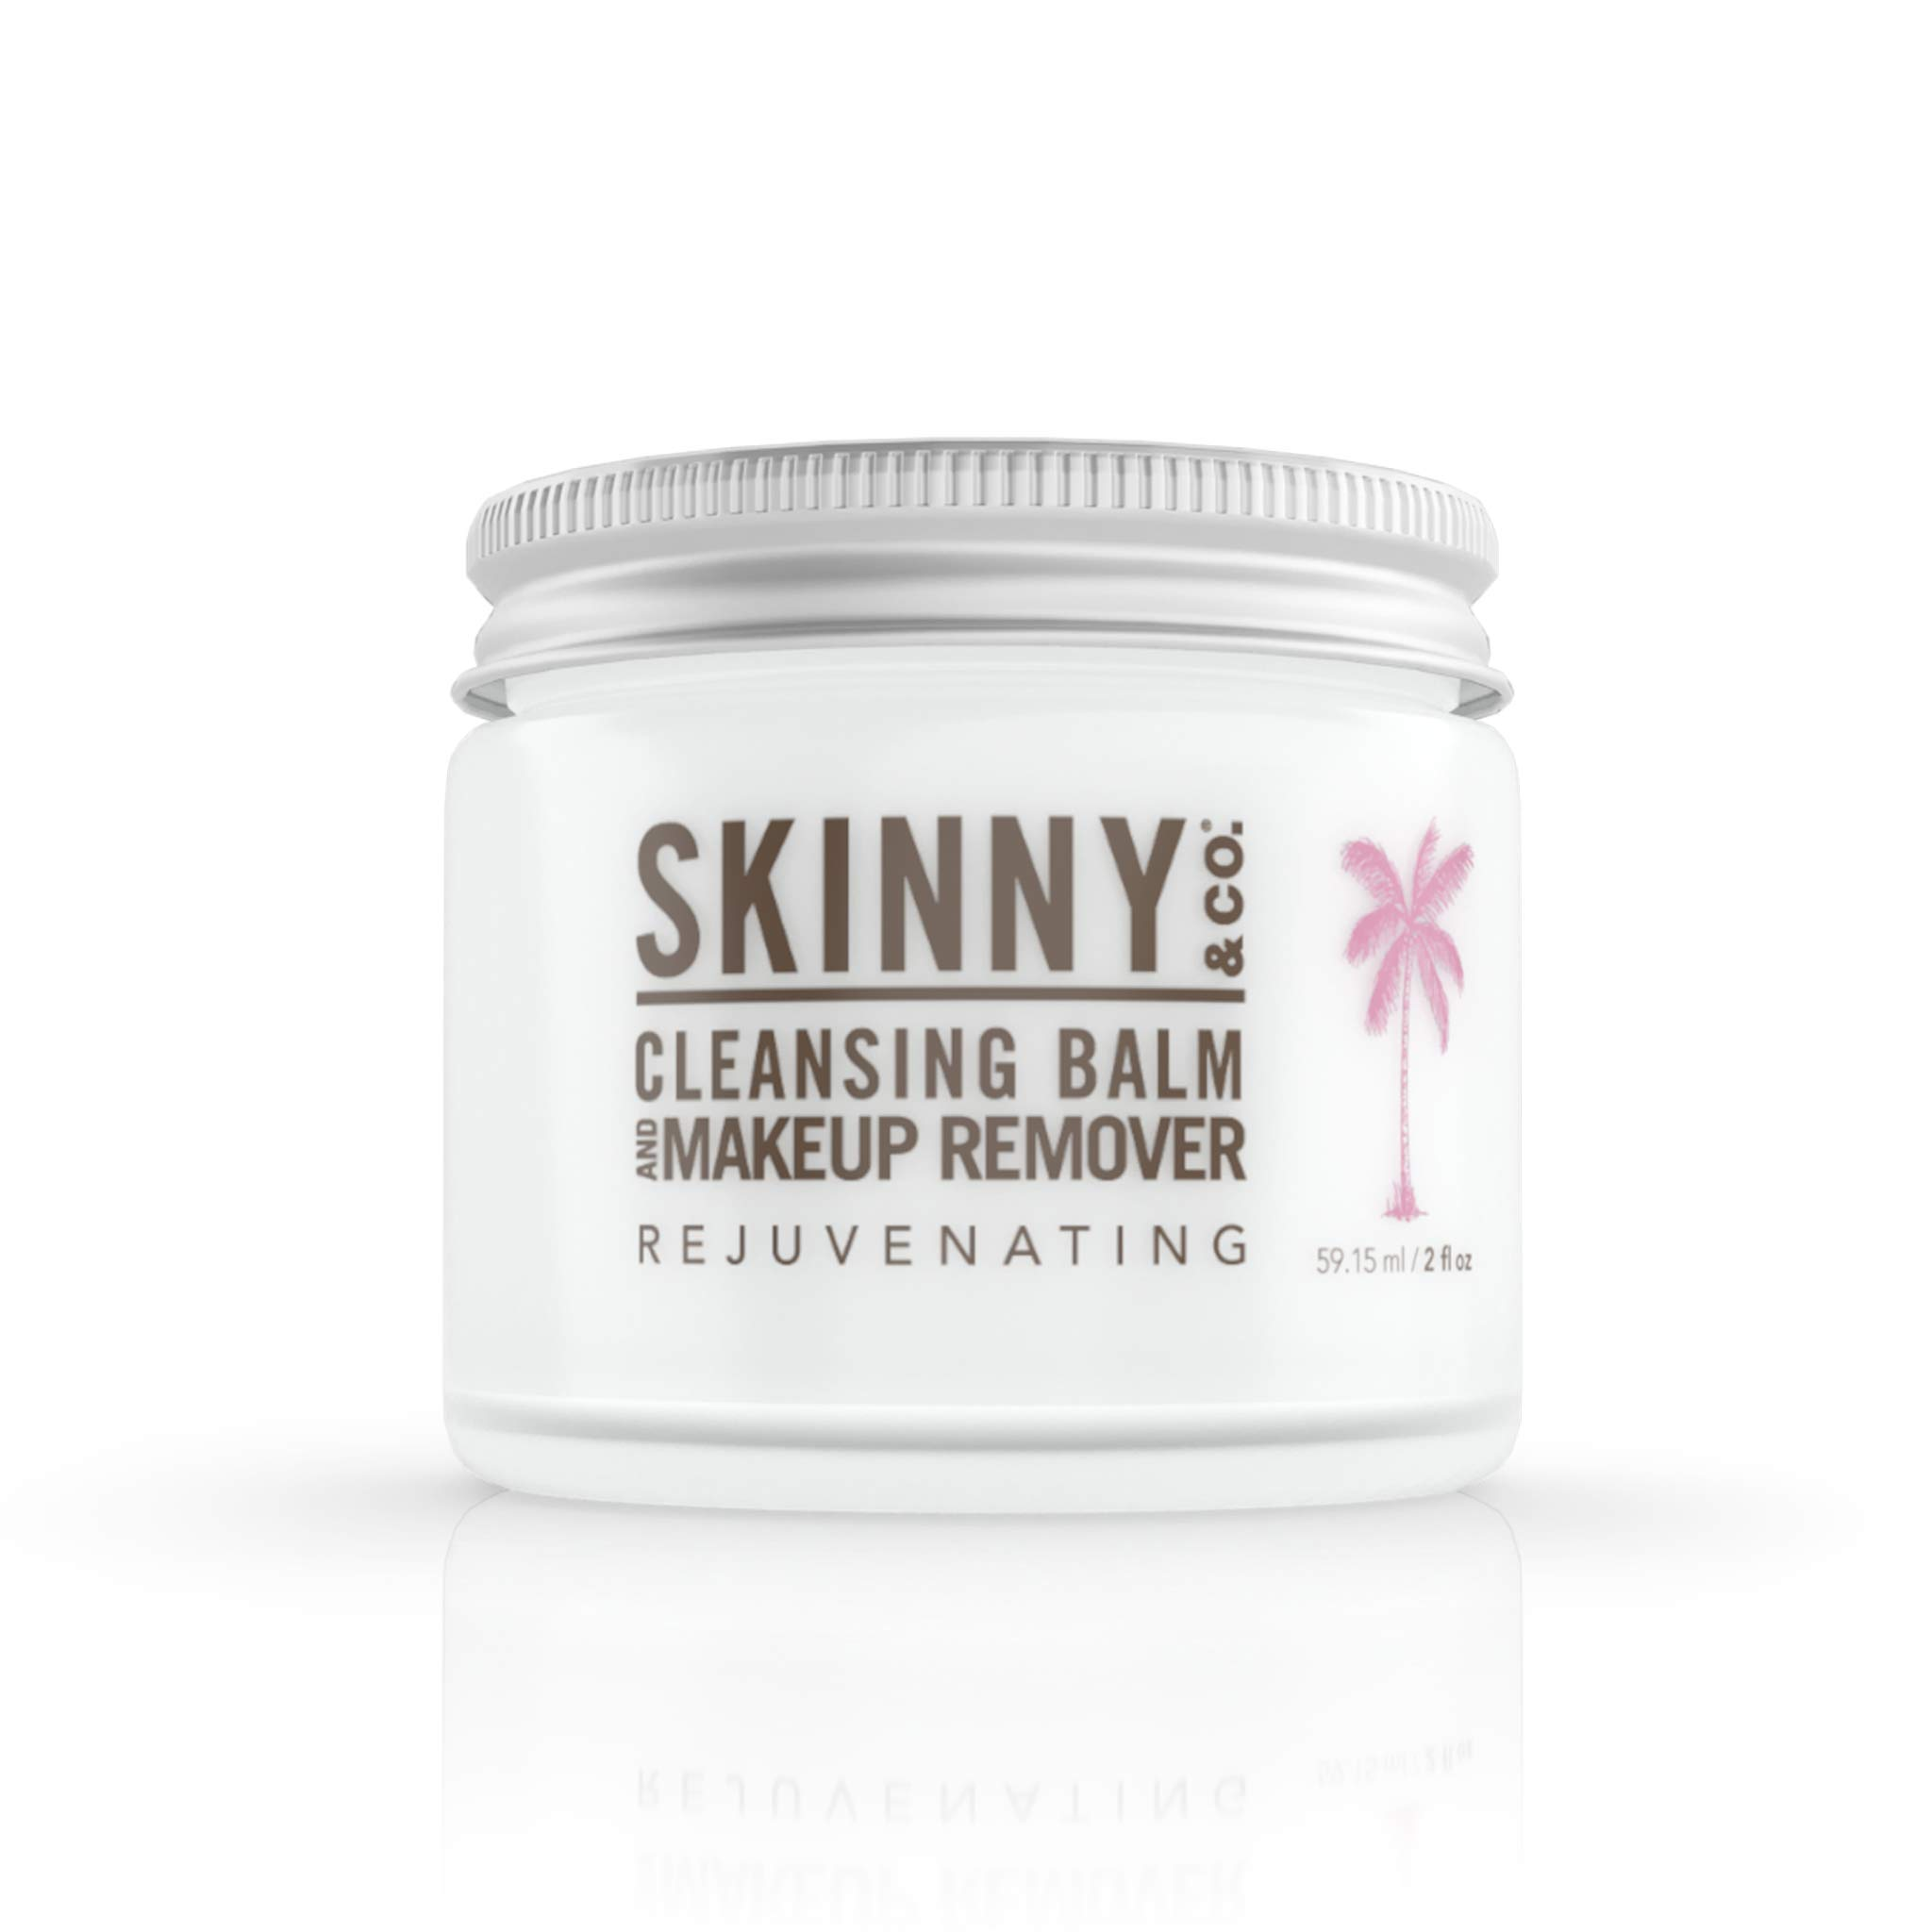 SKINNY & CO. Rejuvenating Cleansing Balm and Makeup Remover- 3-in1 Formula, Makeup Remover, Cleanser & Moisturizer   For Dry/Aging Skin, Firms and Smoothes, 100% Raw Coconut Oil, Paraben Free, 2 oz.